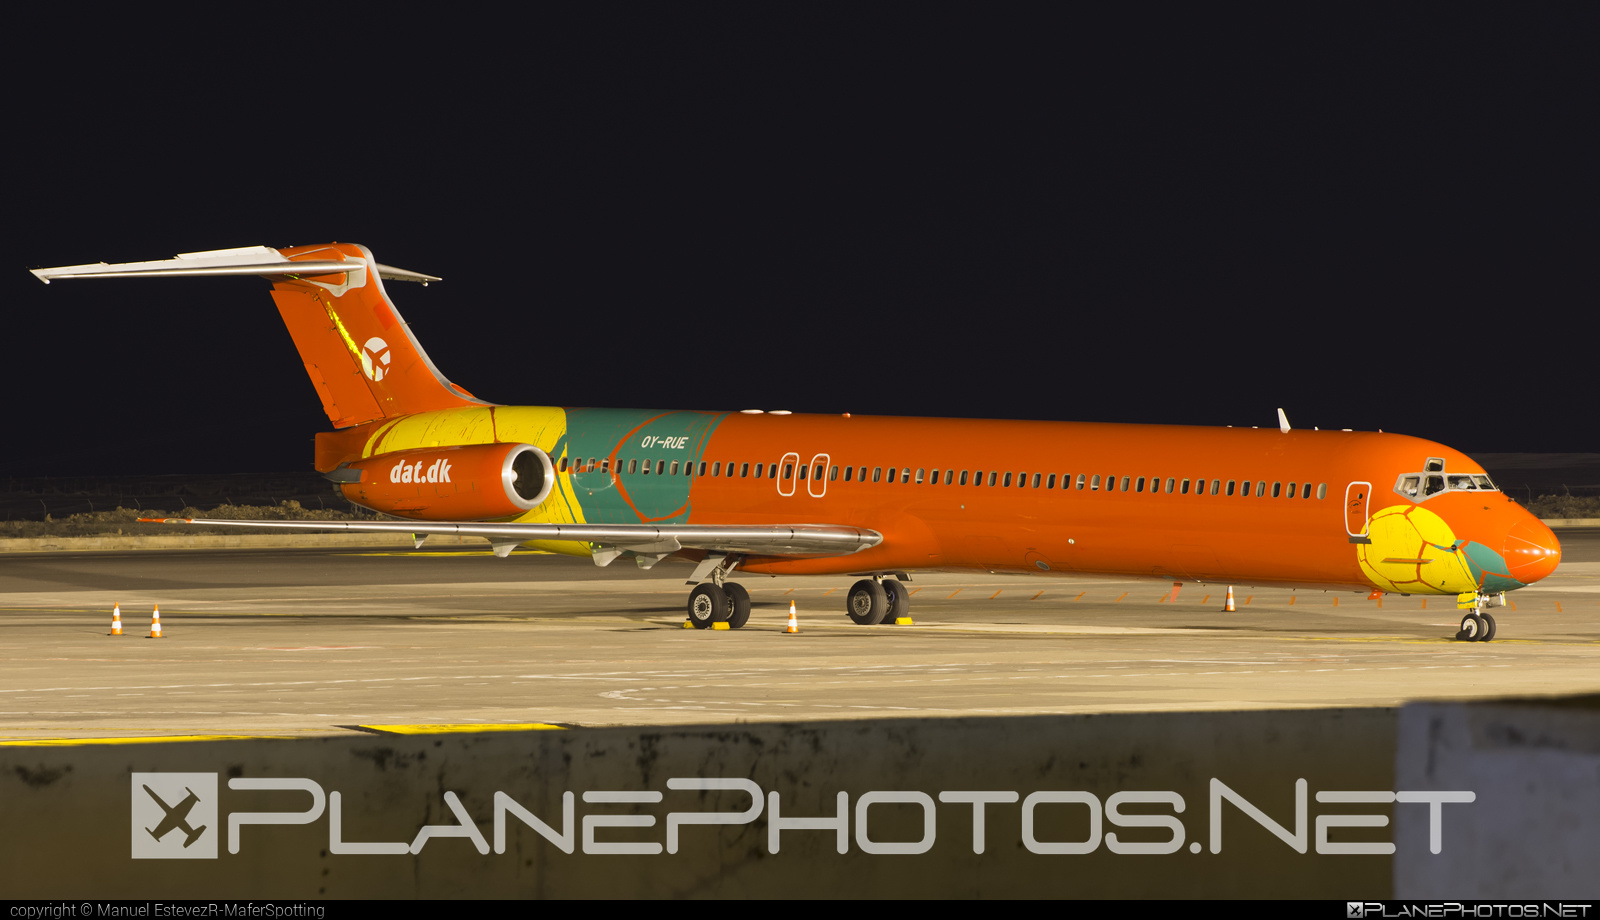 McDonnell Douglas MD-83 - OY-RUE operated by Danish Air Transport (DAT) #mcdonnelldouglas #mcdonnelldouglas80 #mcdonnelldouglas83 #mcdonnelldouglasmd80 #mcdonnelldouglasmd83 #md80 #md83